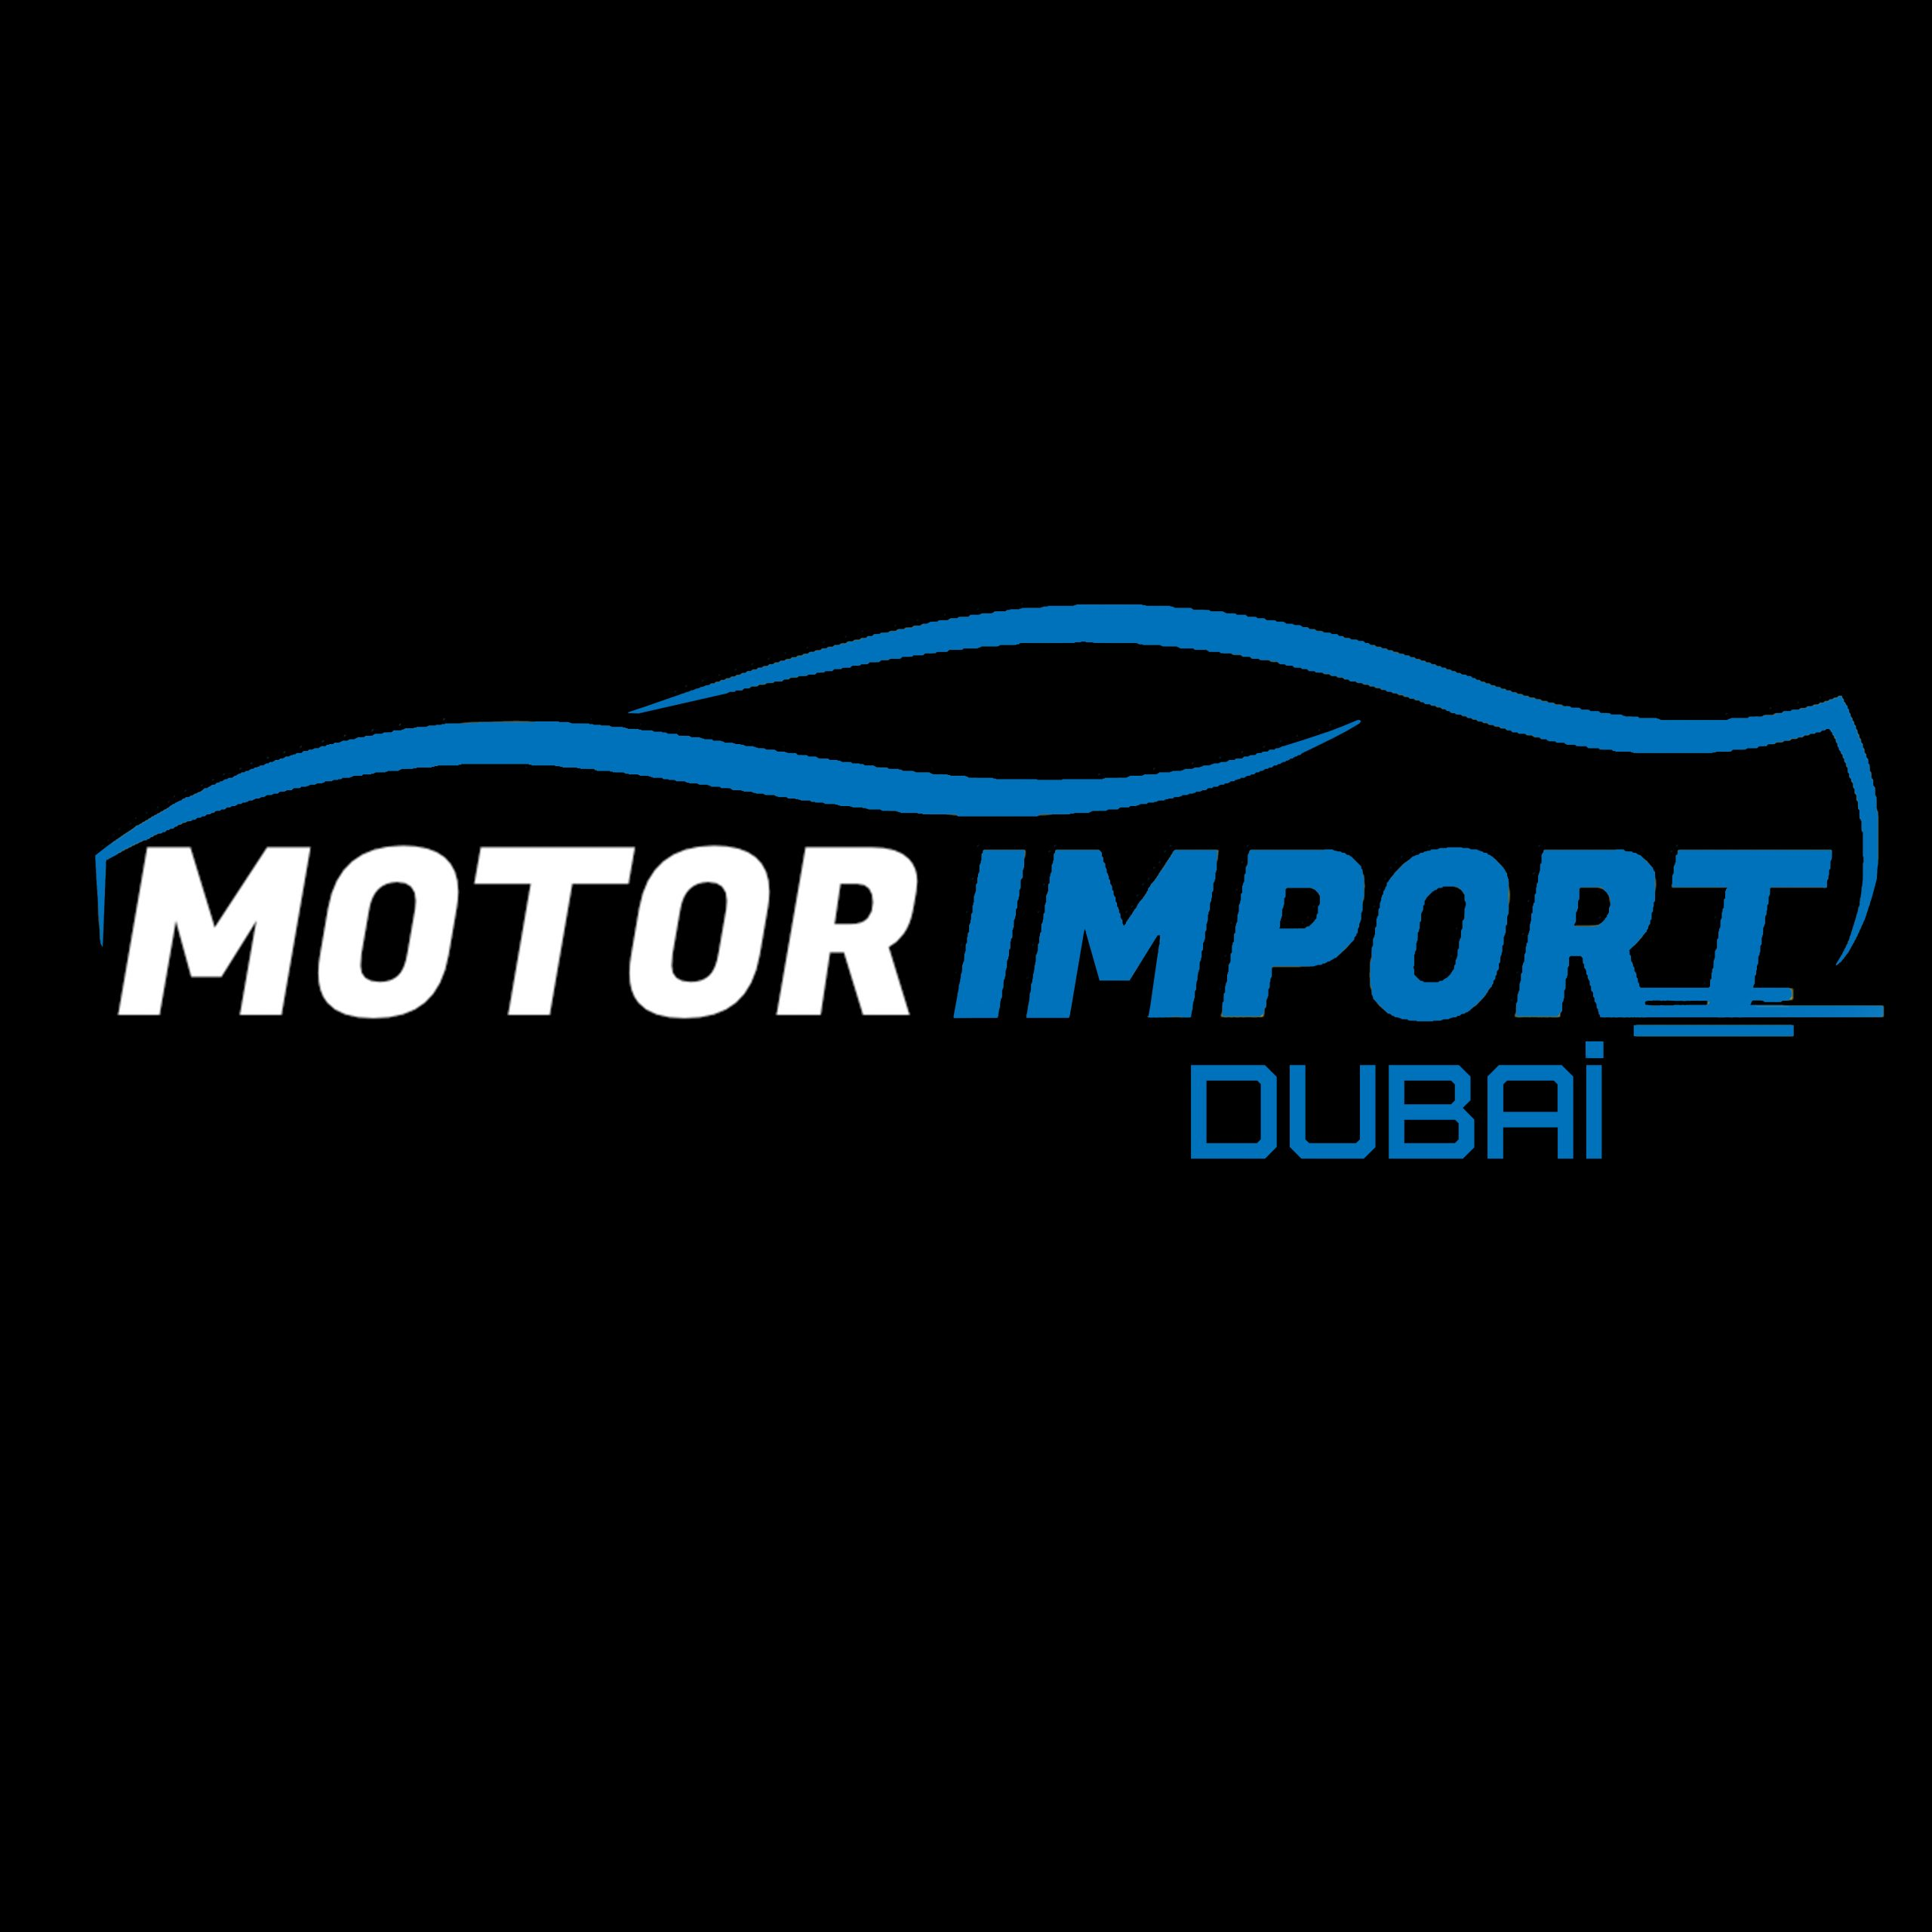 SQUARE EMPTYMOTOR IMPORT DUBAI scaled - LOTUS Japon importation voiture du Japon LOTUS importation vehicule Japon motorimport Tokyo